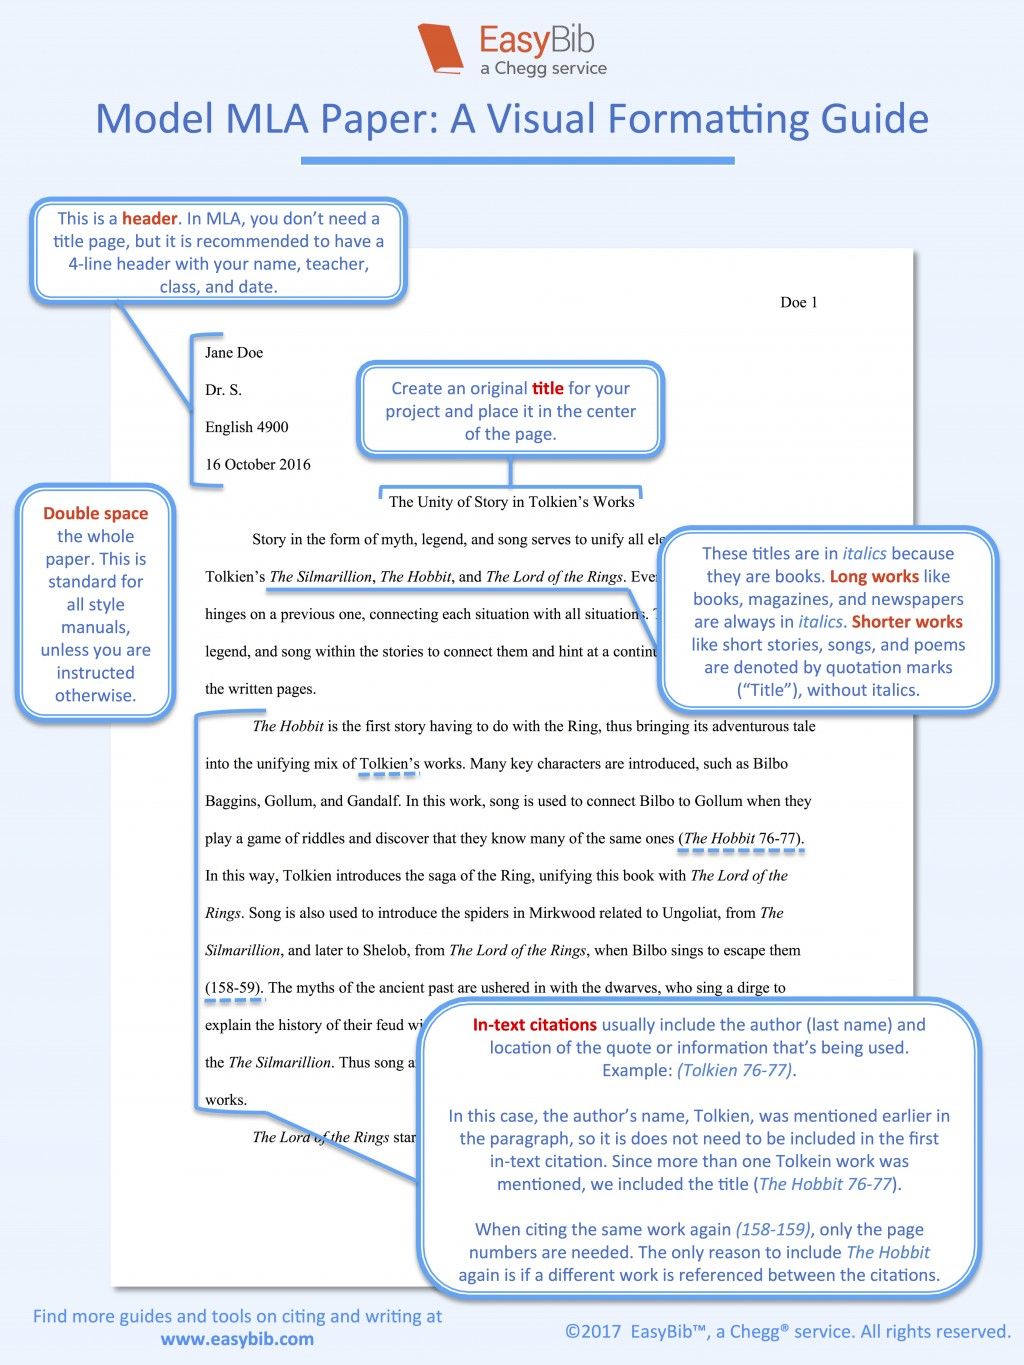 007 Research Paper Model Mla How To Cite Using Frightening A Format In Website Example Large